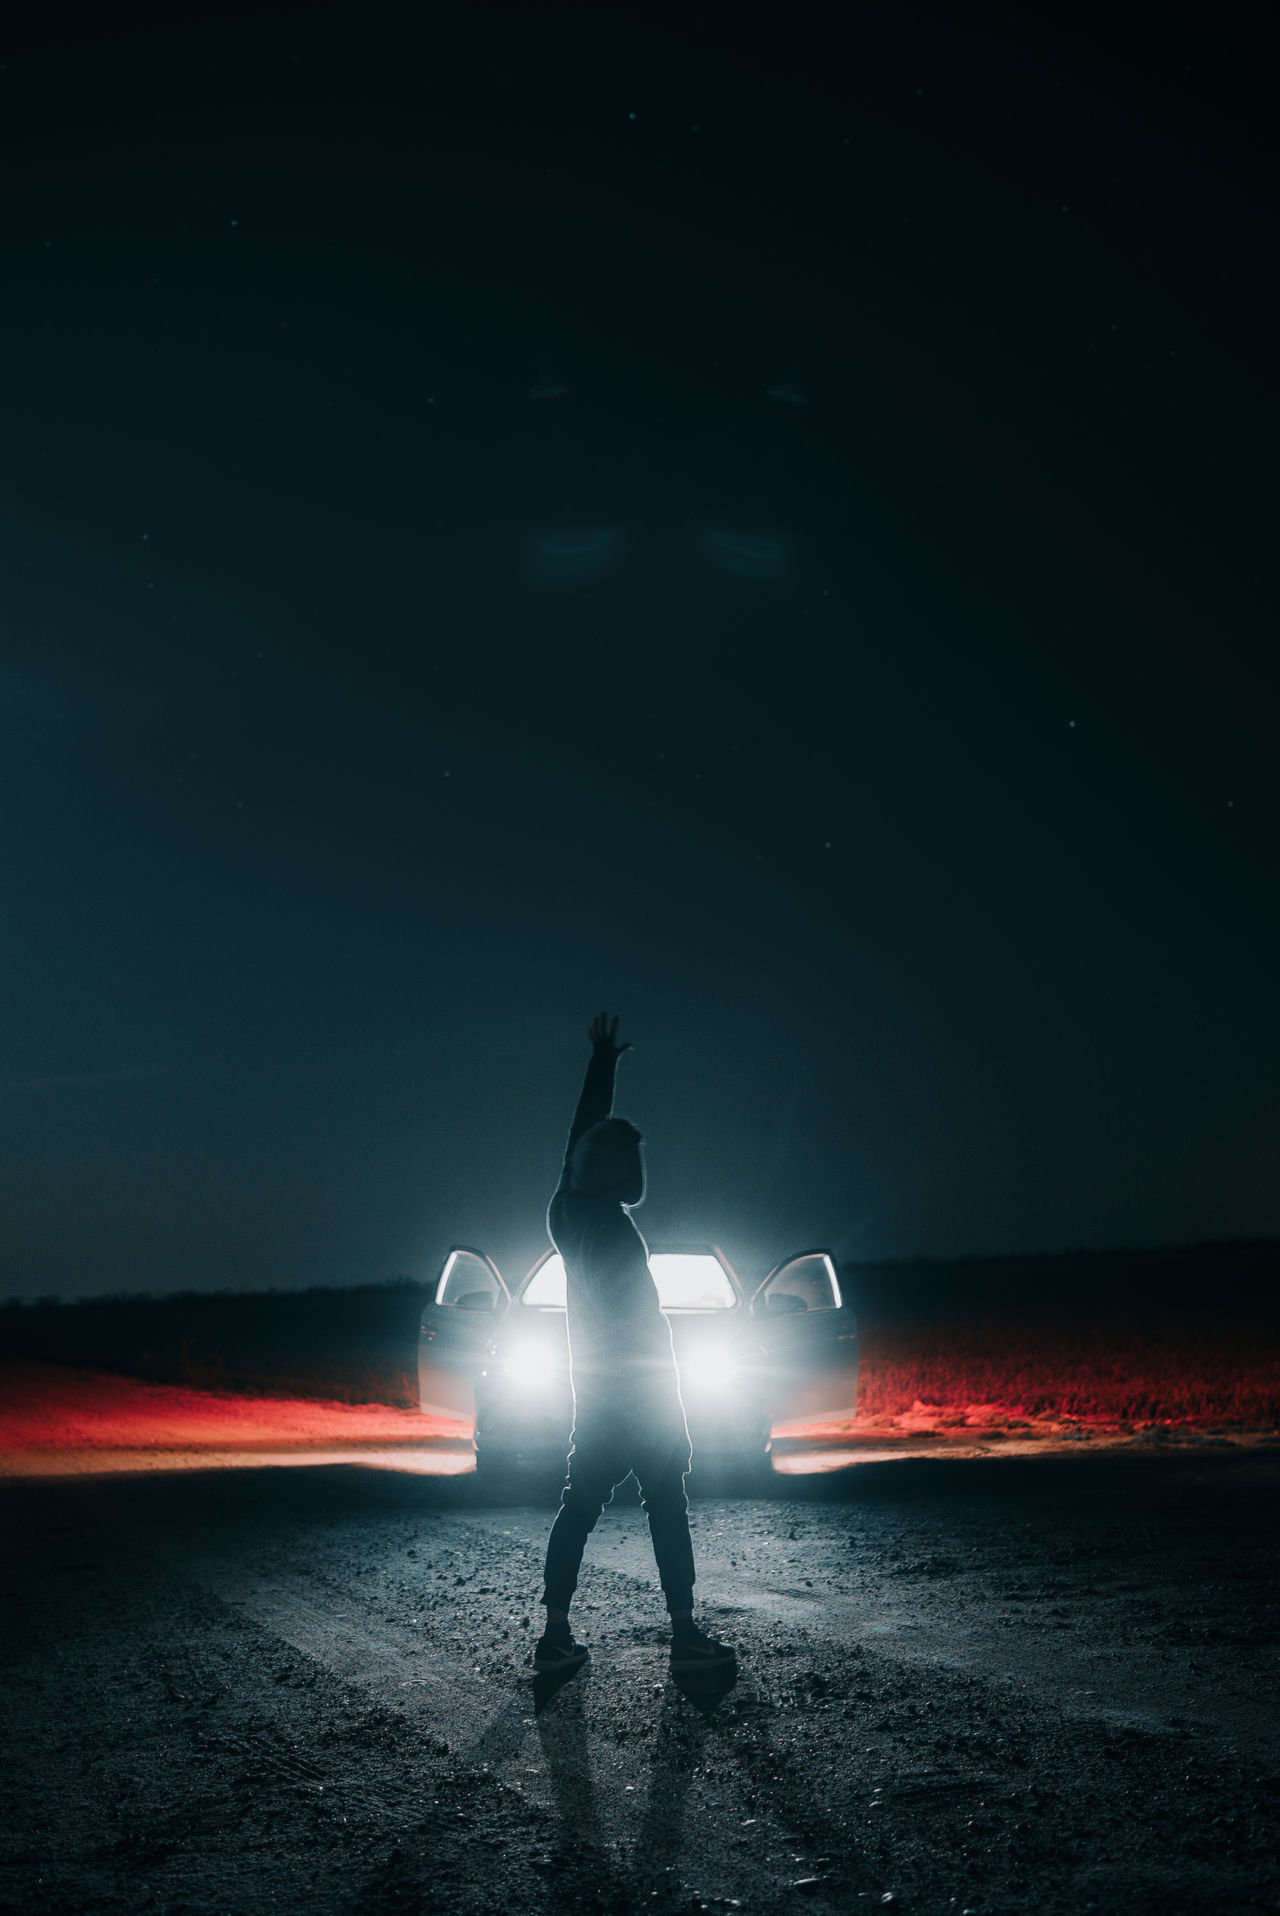 Person standing against illuminated car at night